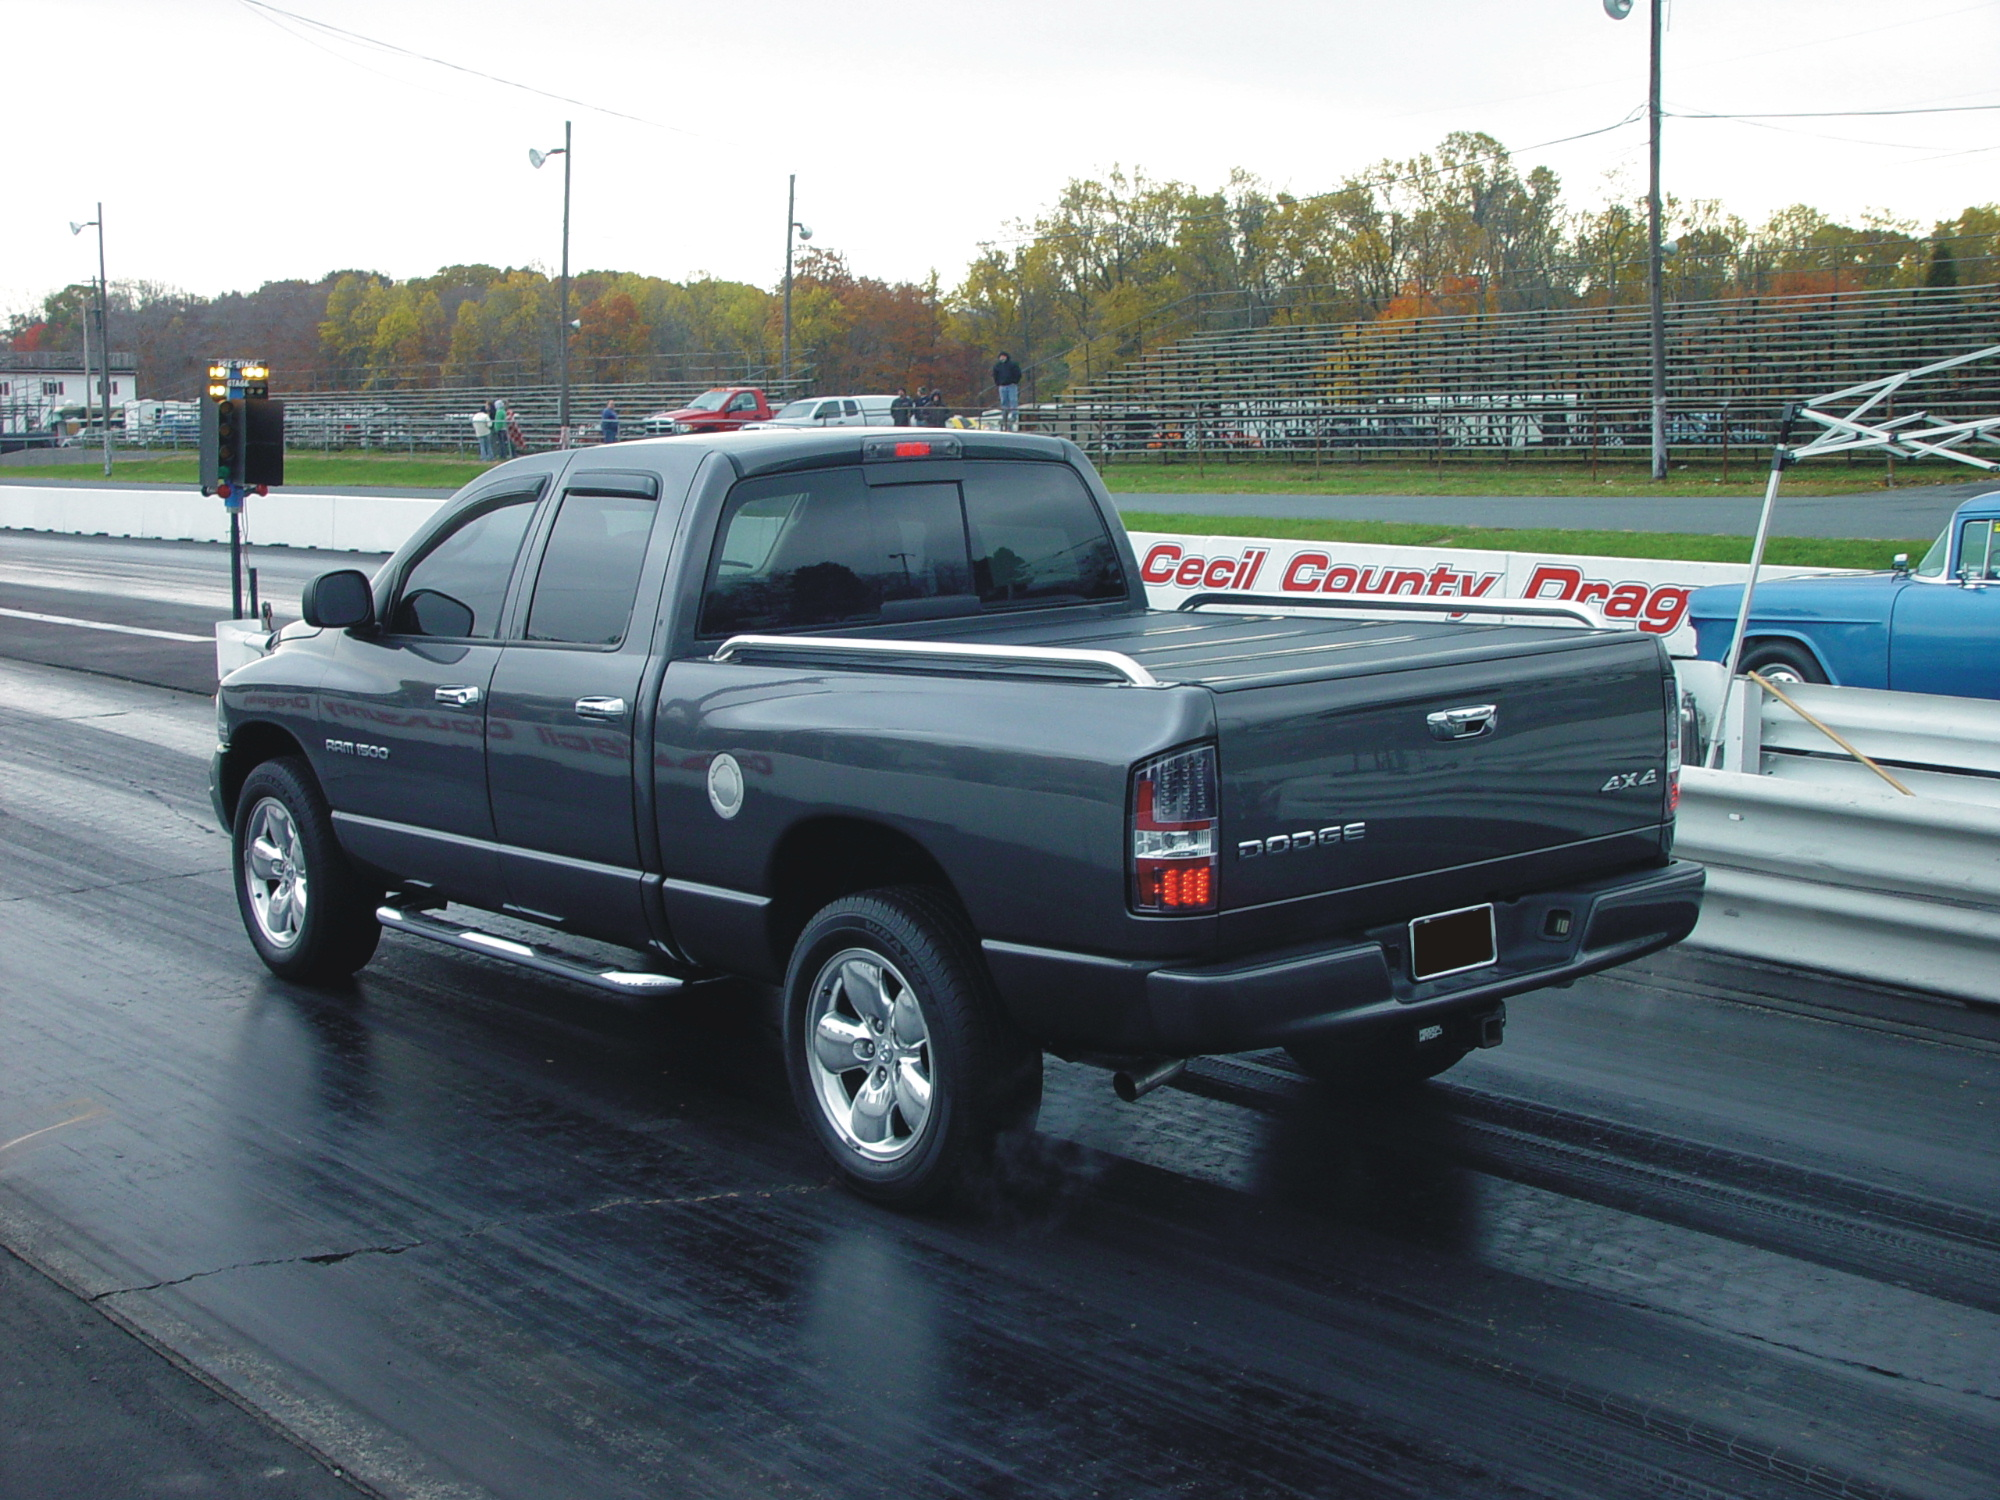 Dodge Ram 1500 4x4 Quad Cab HEMI 1/4 mile Drag Racing timeslip specs